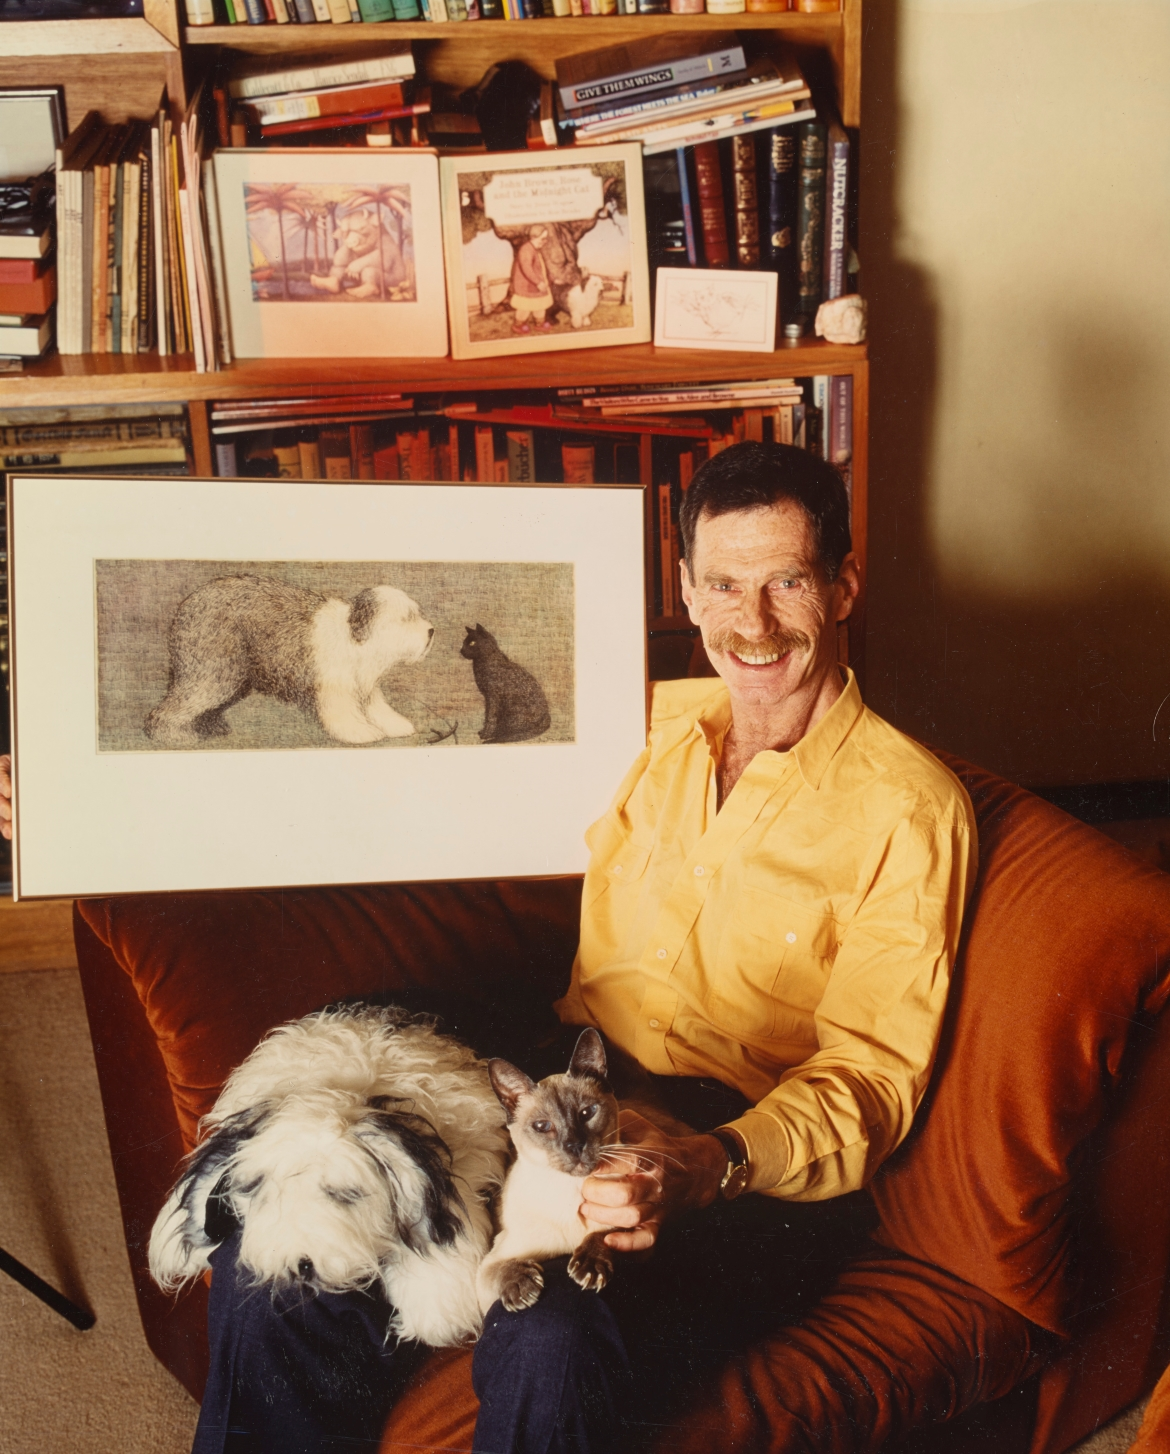 A smiling man sits with a fluffy dog on his lap